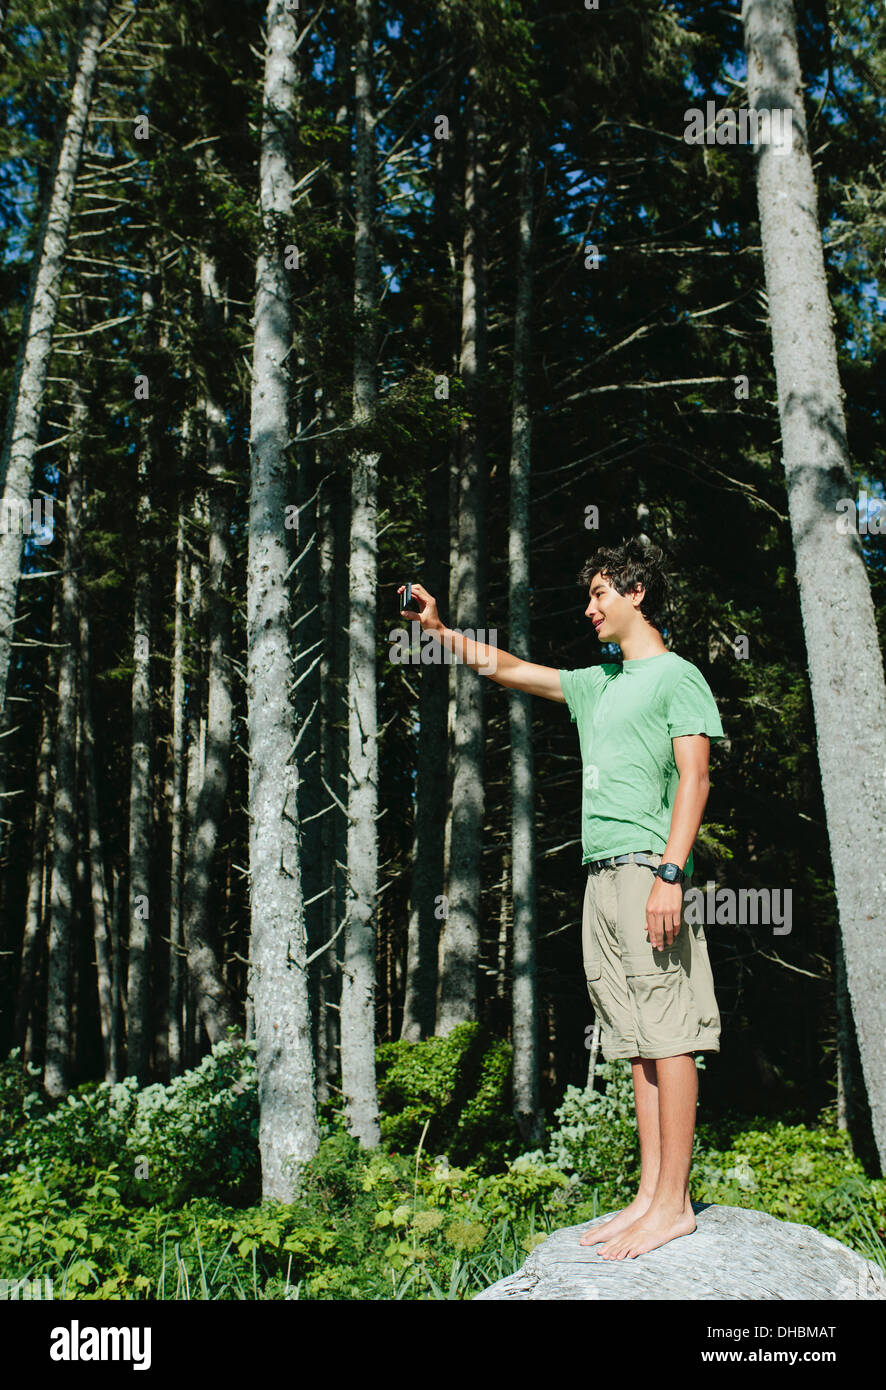 A young boy standing in the forest holding a smart phone up to take a selfy or a photograph, in Olympic national park. - Stock Image